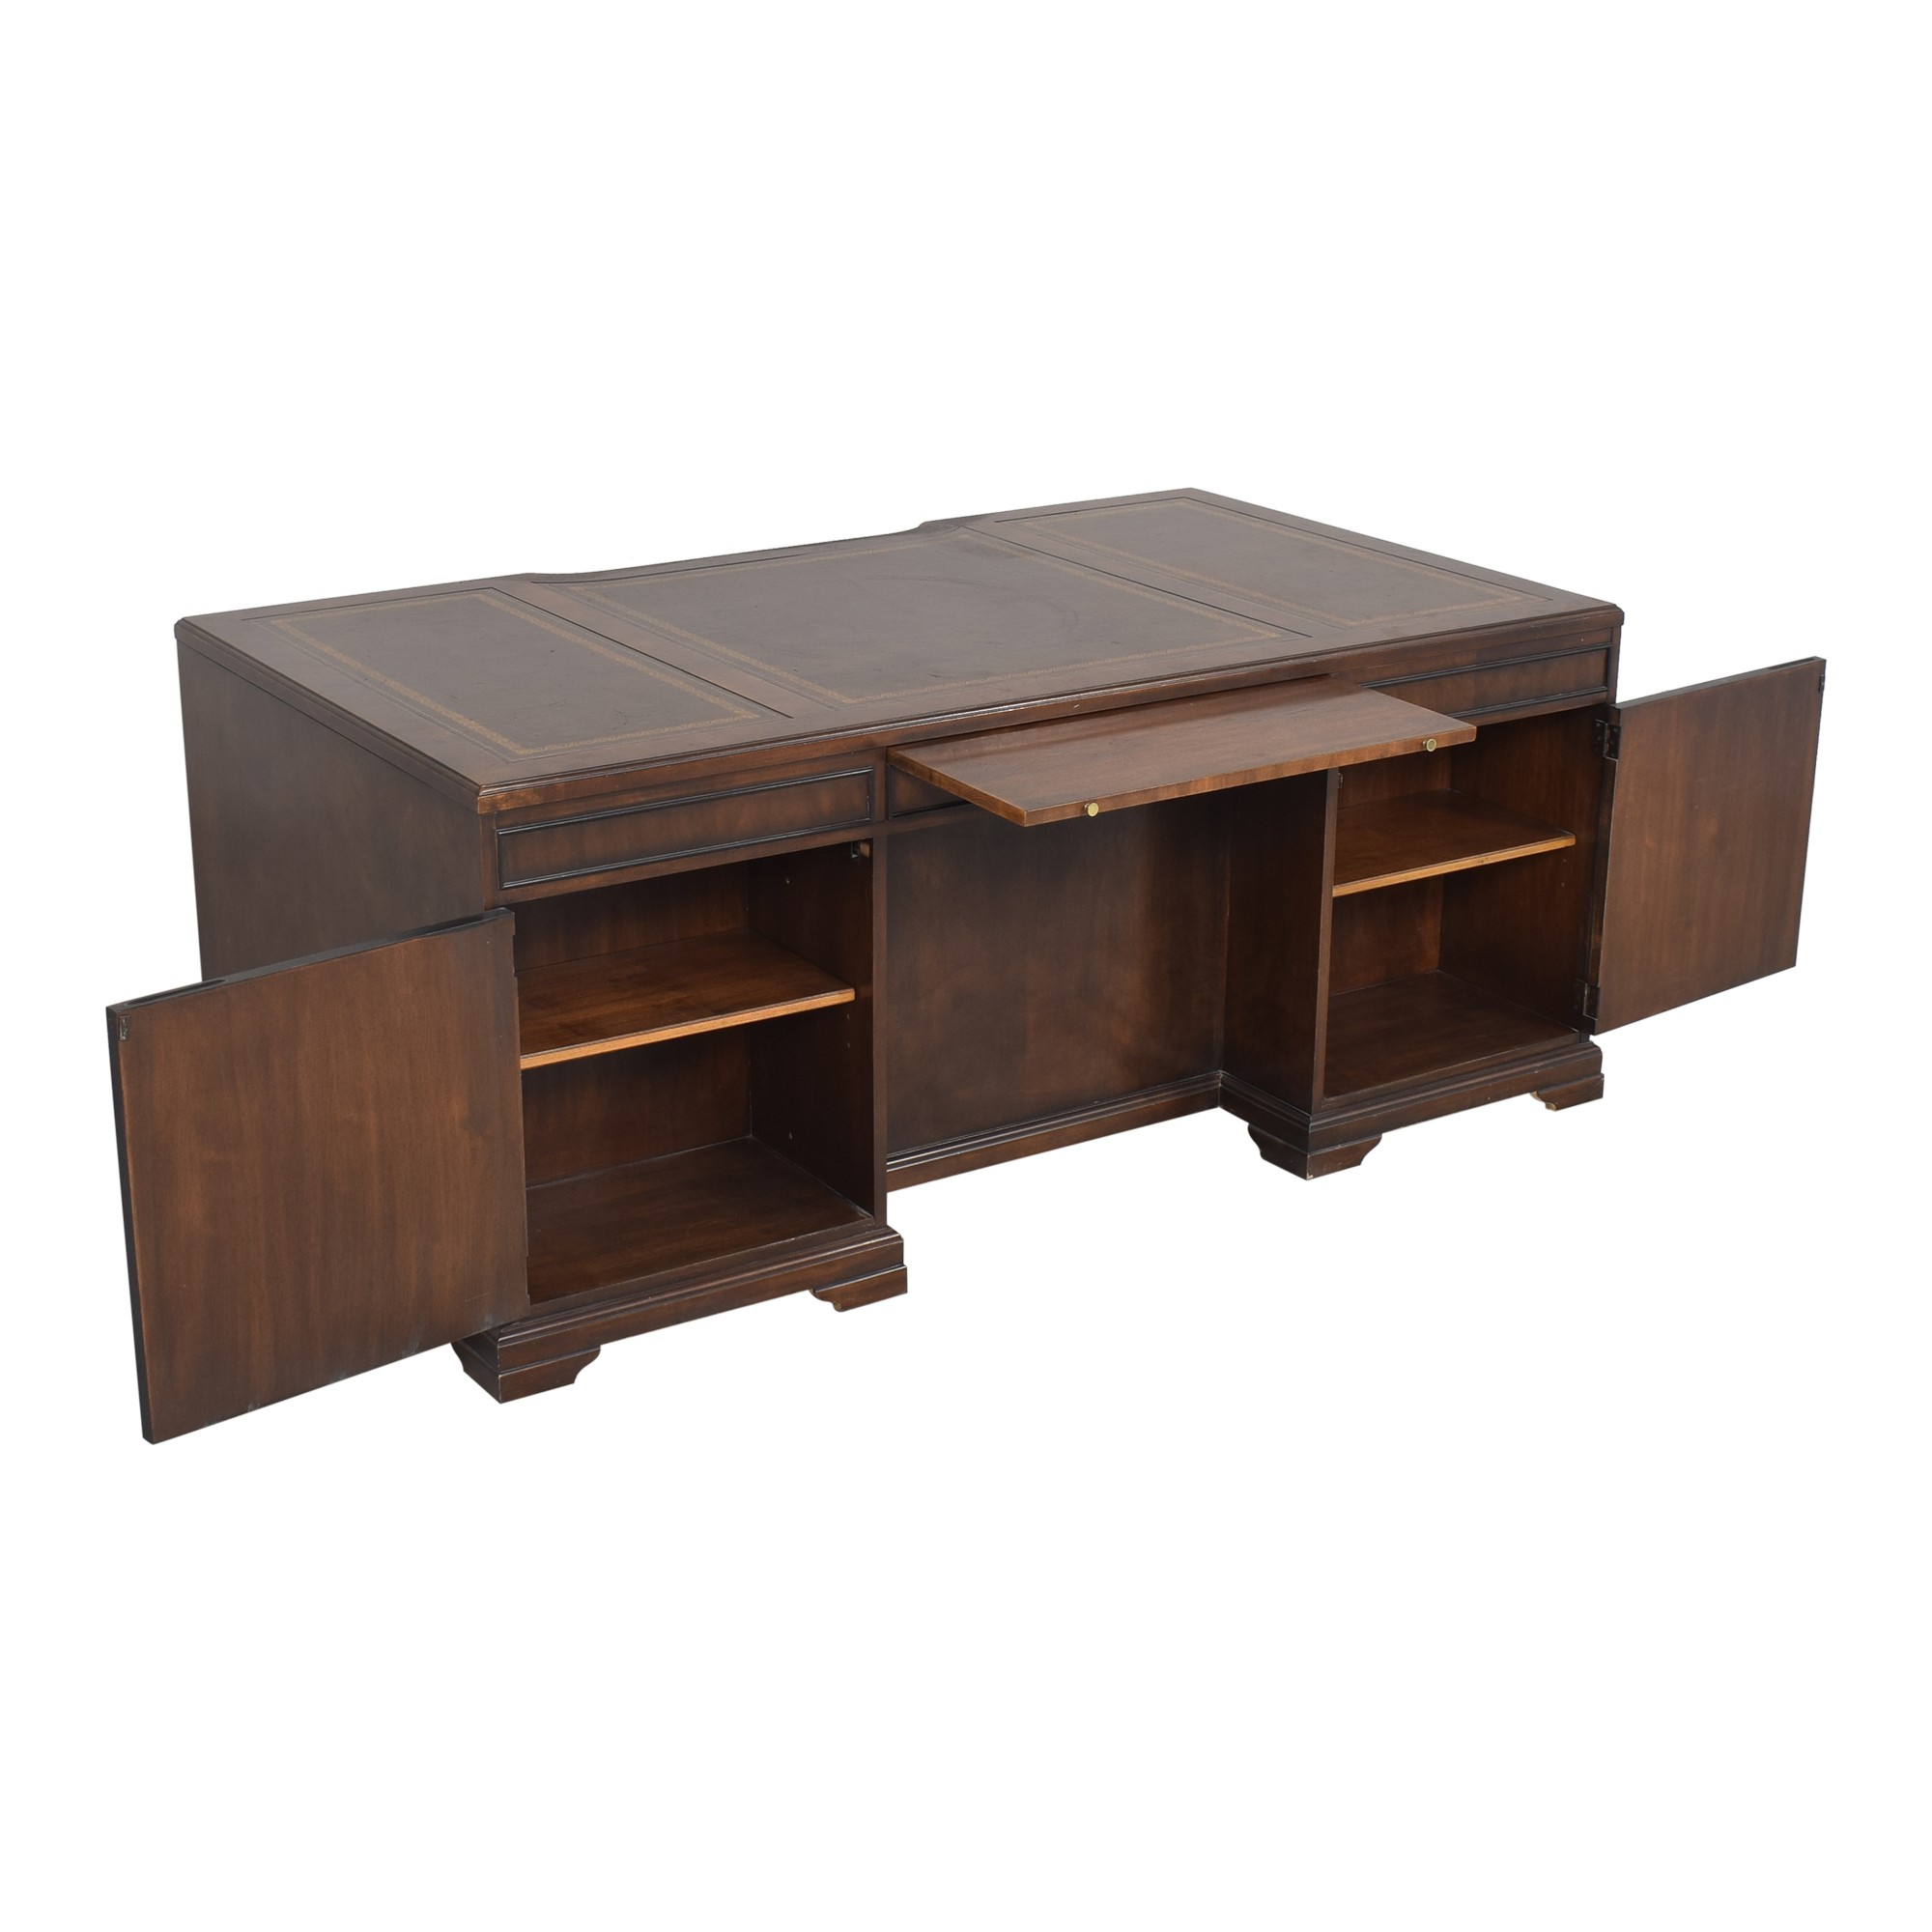 Executive Desk with Drawers and Cabinets ma